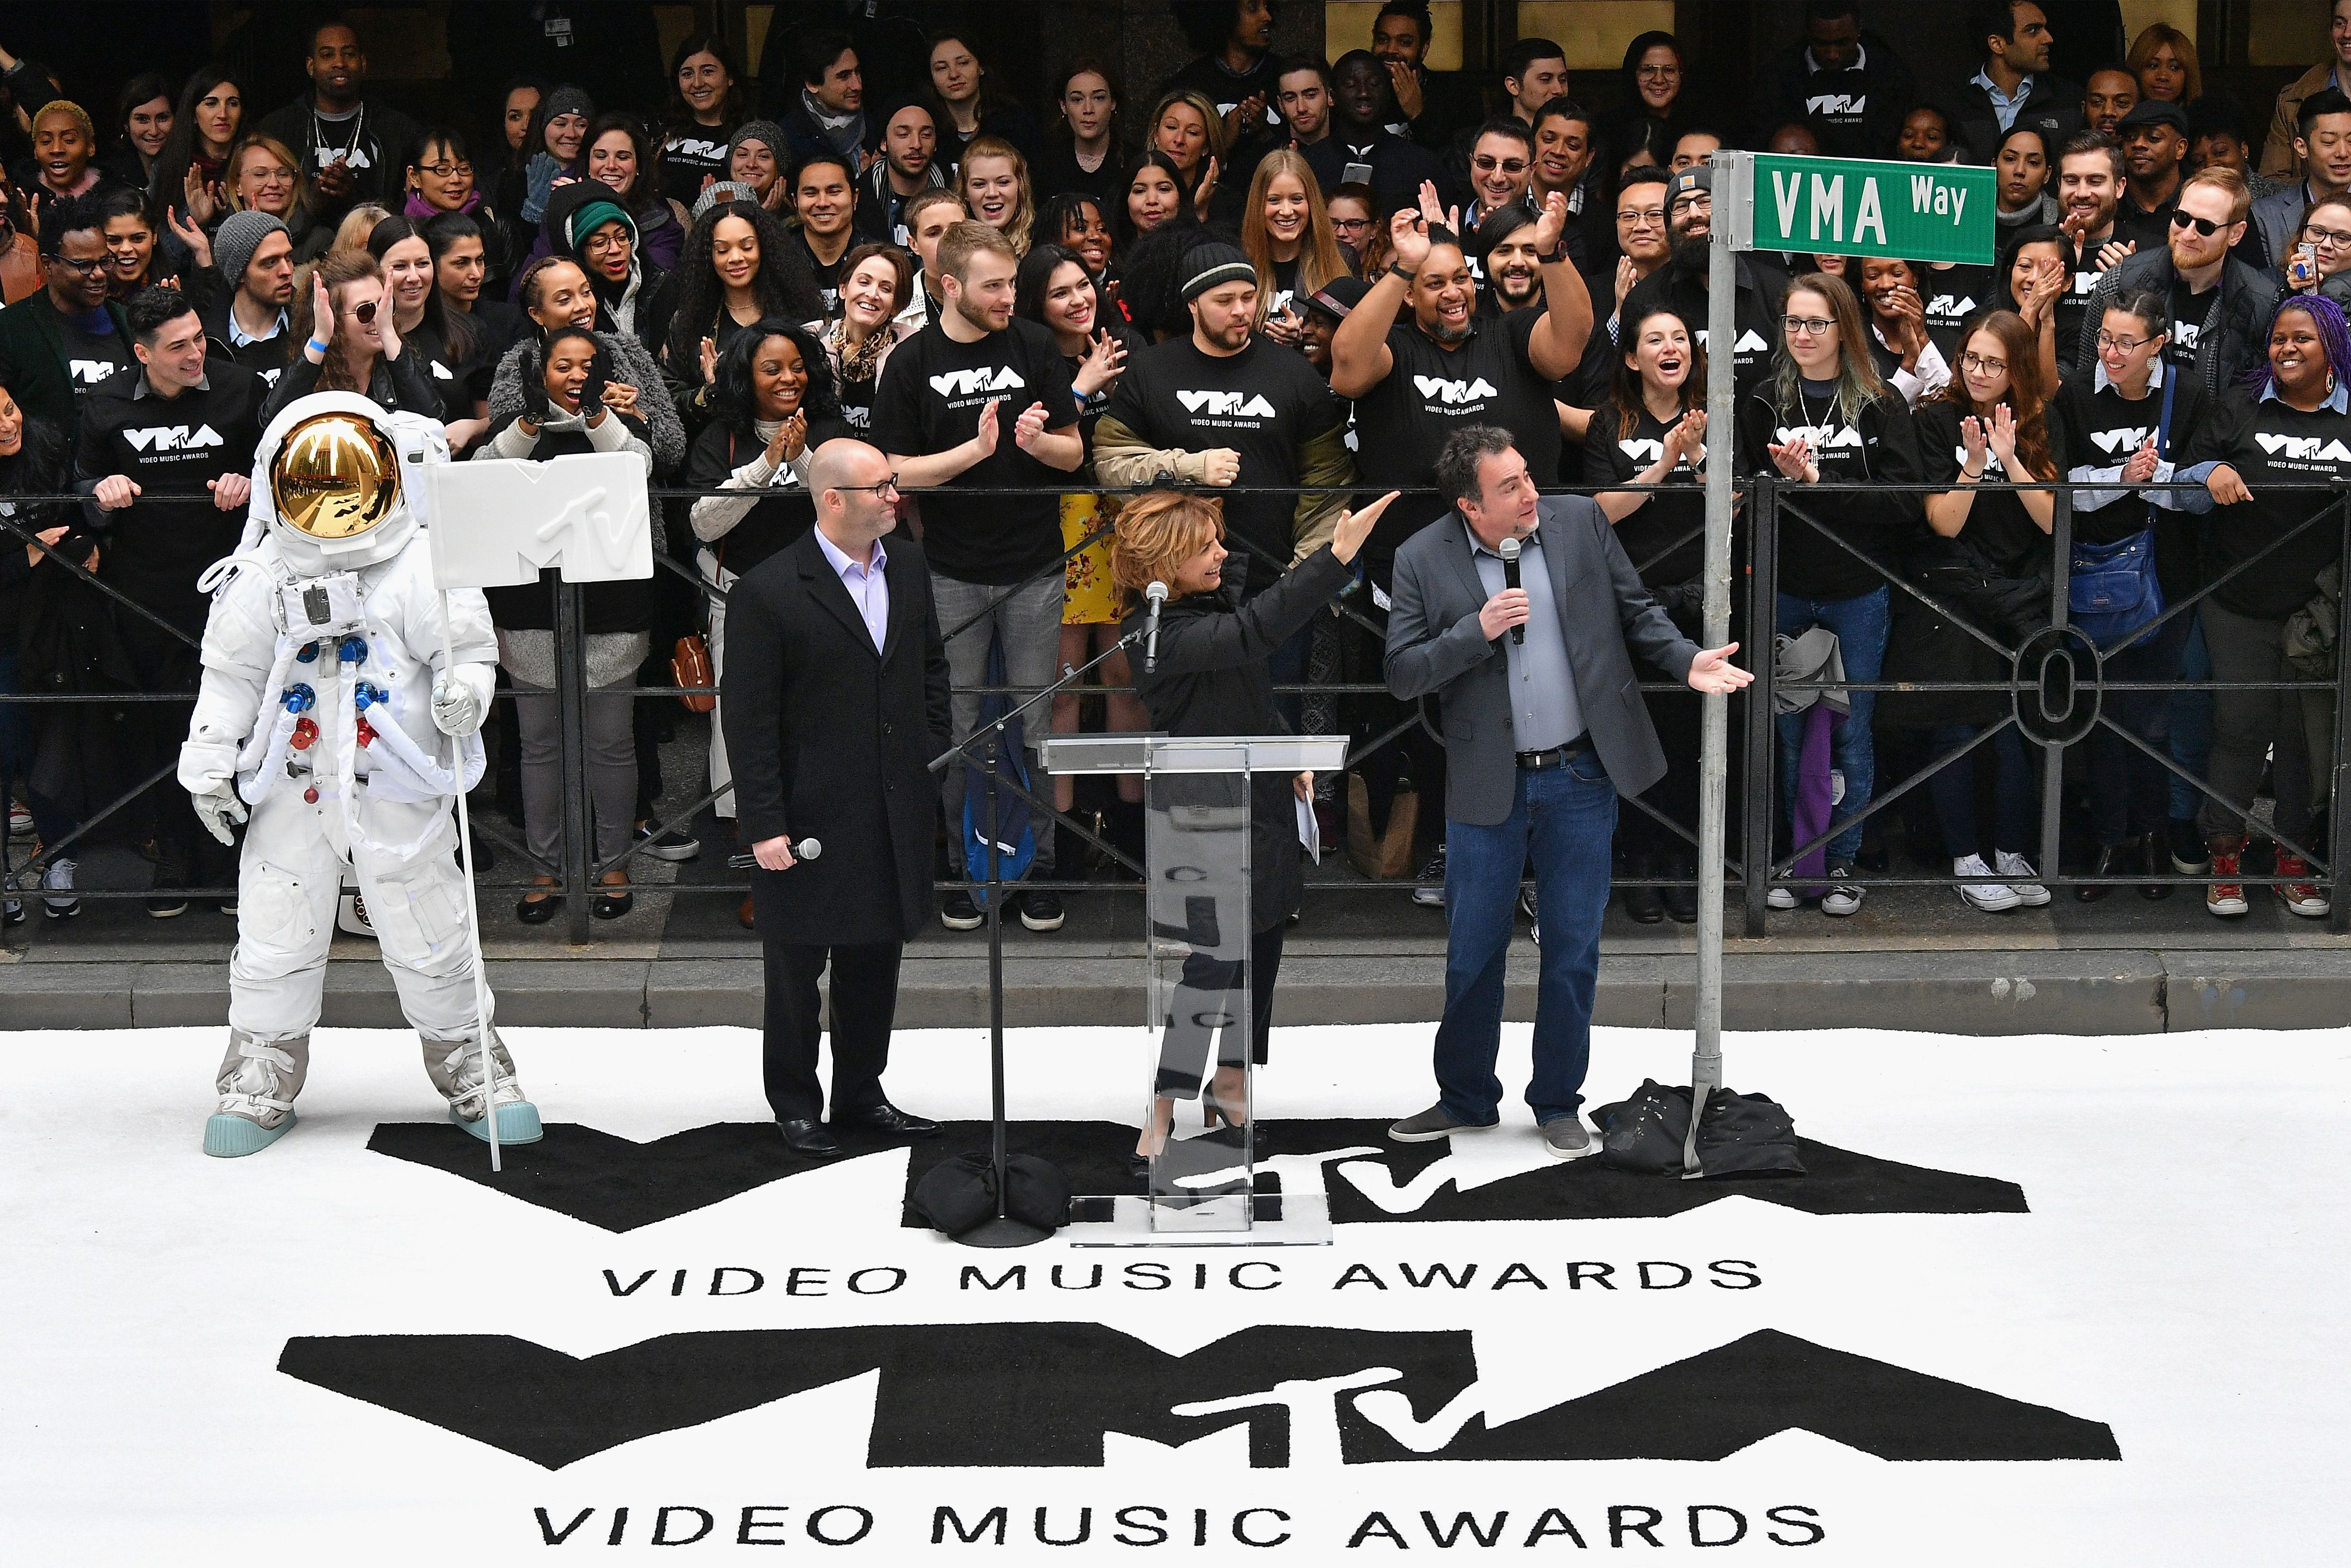 MTV's Video Music Awards heading back to NY